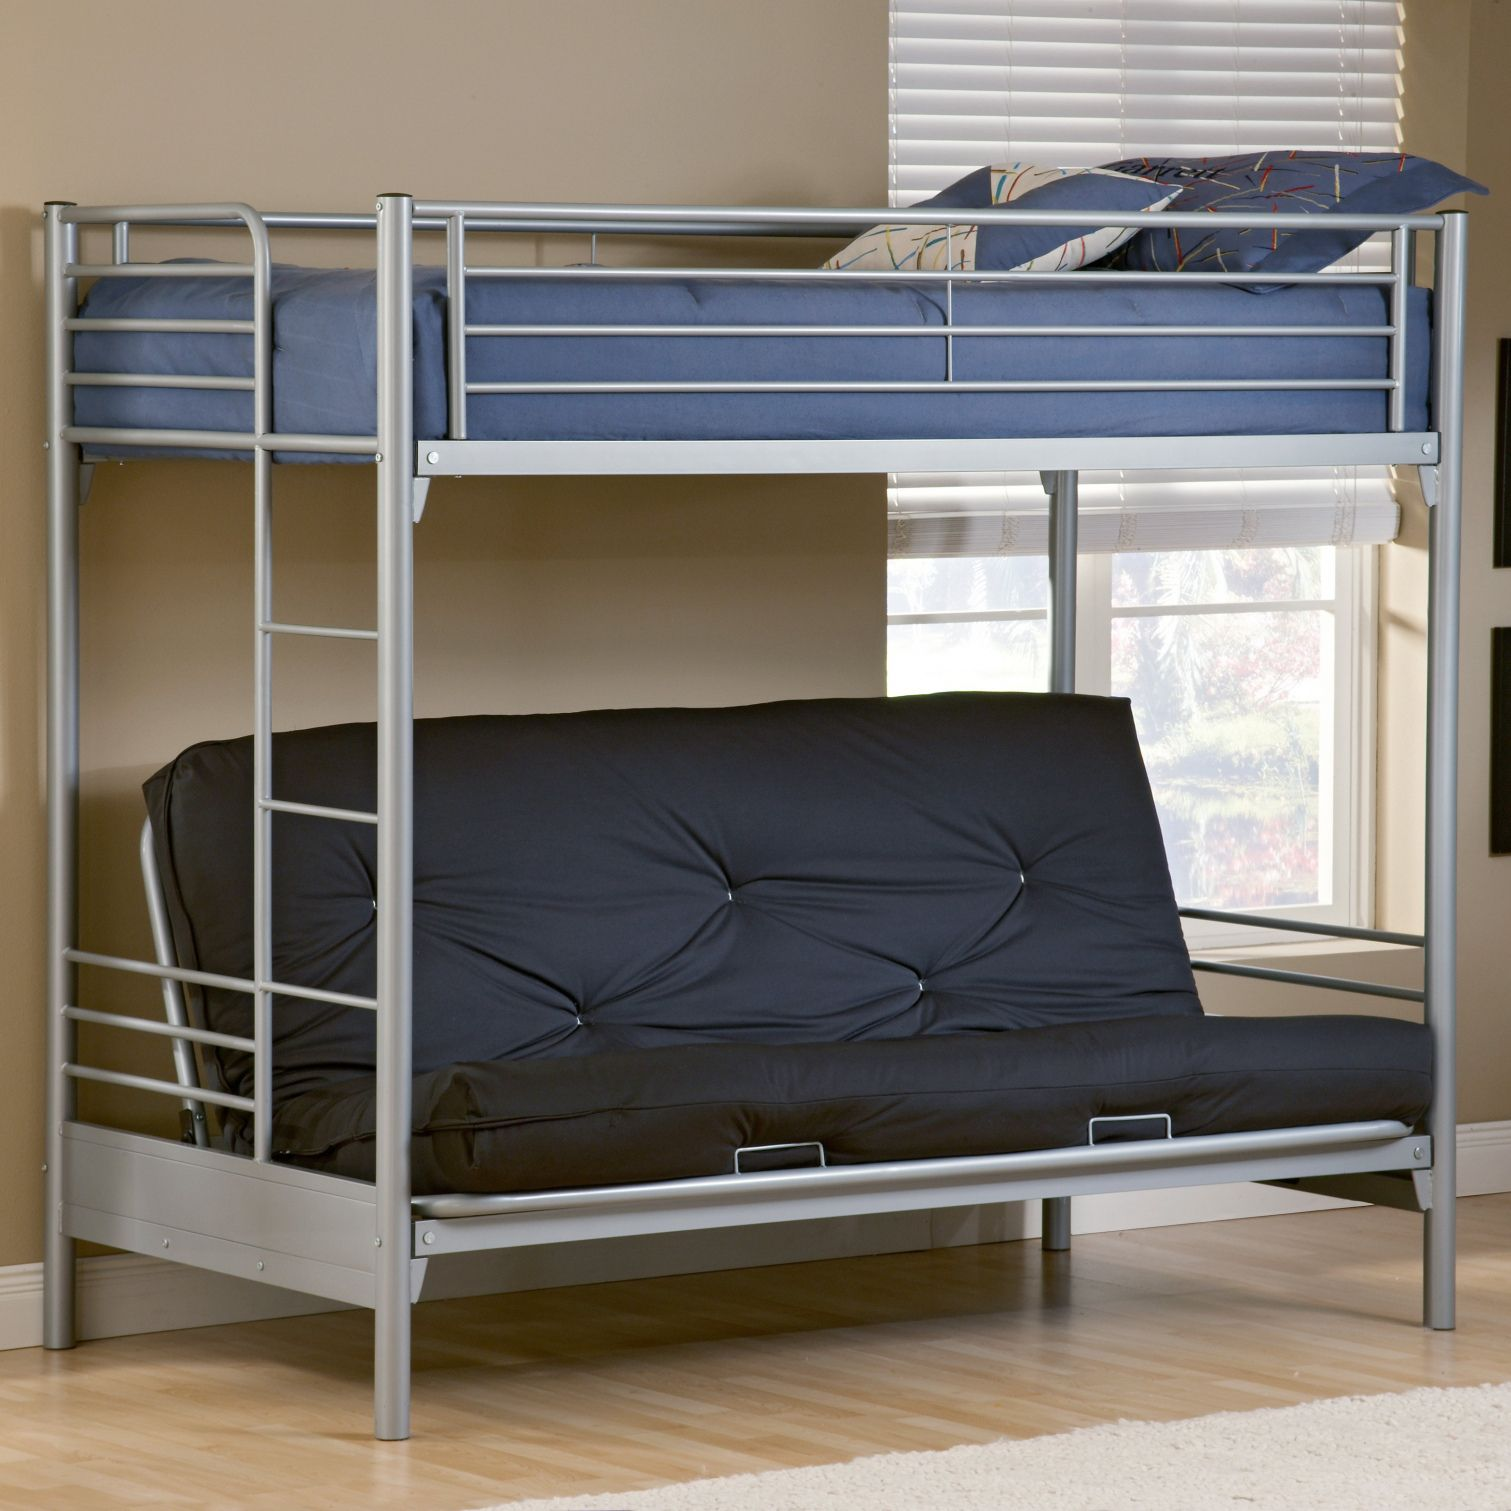 Full Over Futon Bunk Bed Modern Interior Paint Colors Check More At Http Billiepiperfan Com Full Over Futon